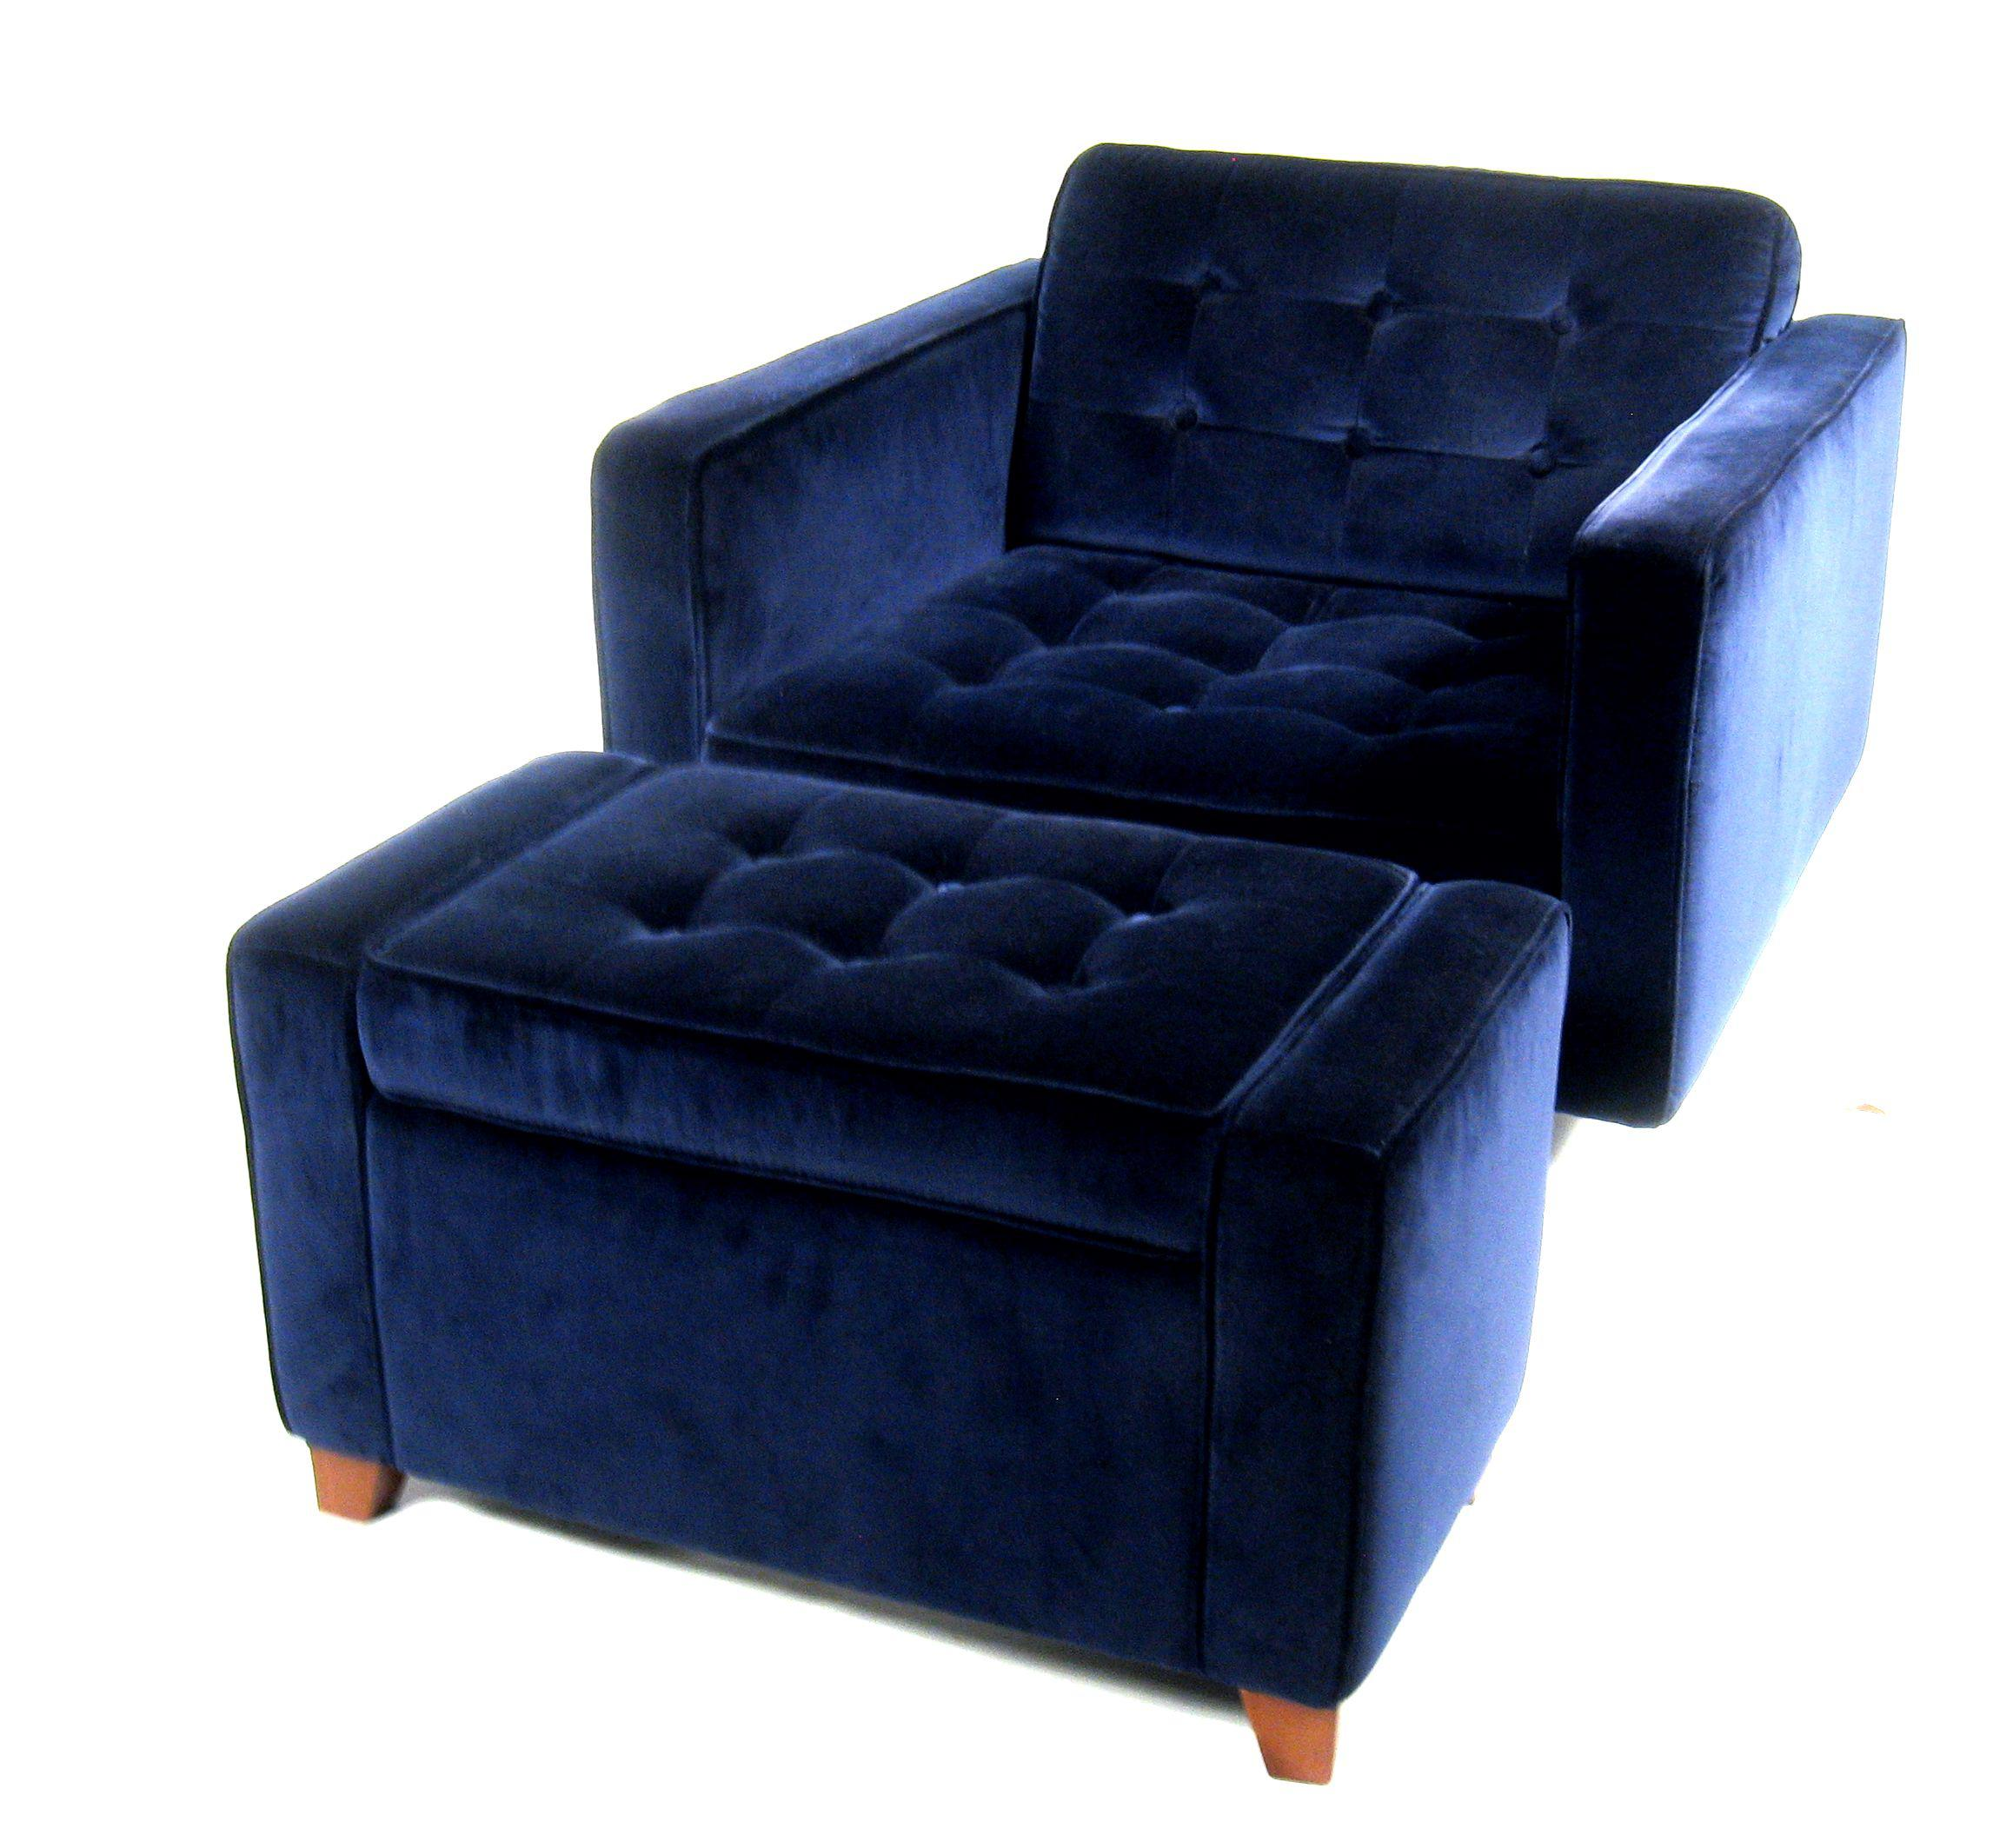 Etonnant Adler Happy Chic Line, Chair With Storage Ottoman. Used Piece With Some  Wear On. Boho Chic Boho Chic Jonathan Adler Royal Blue Velvet ...